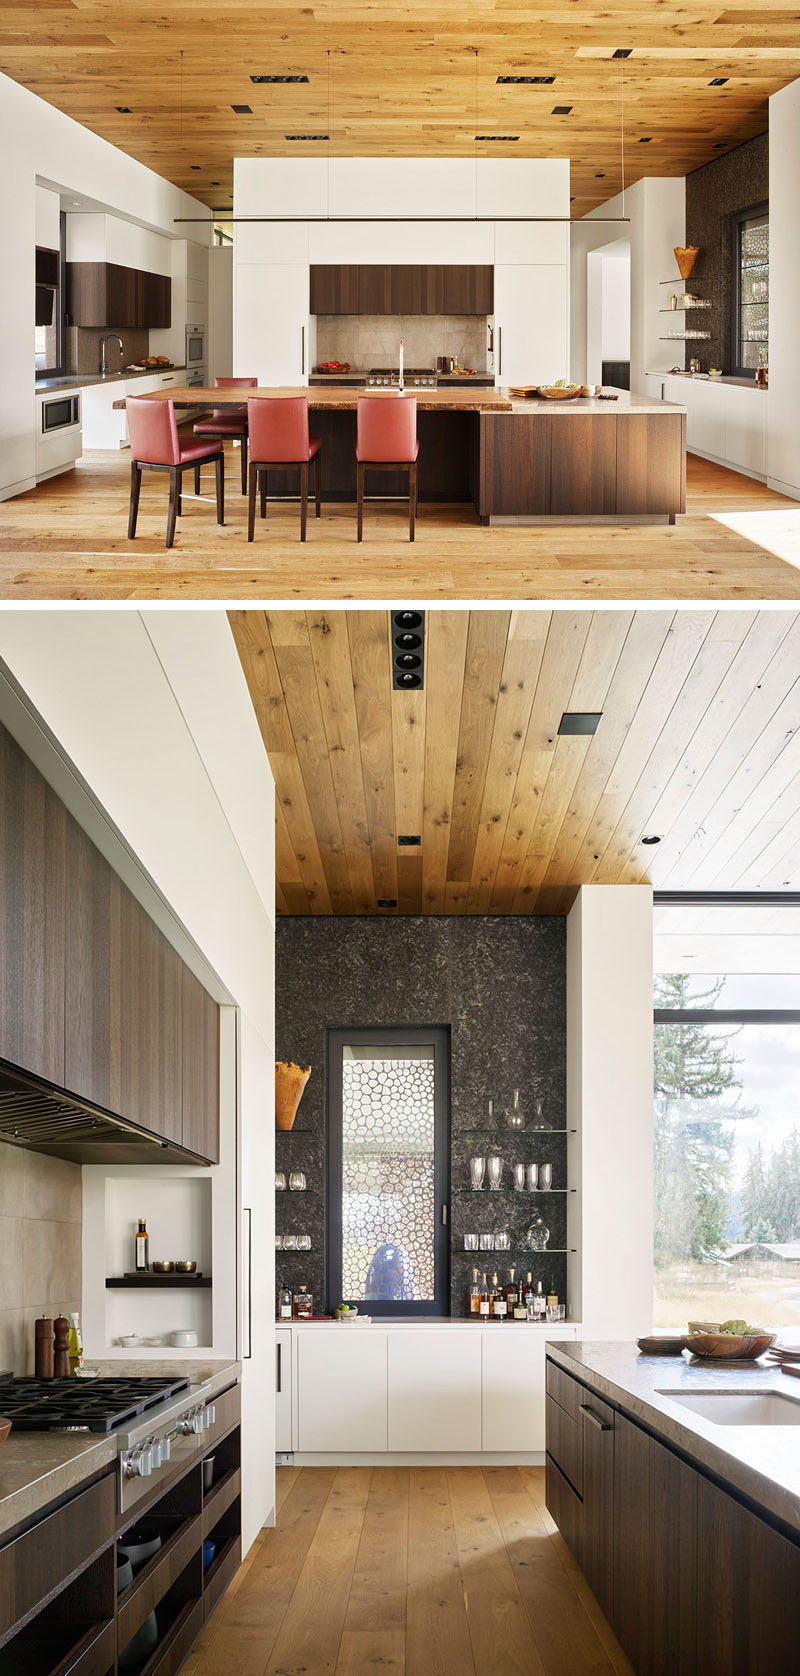 White oak floors and ceilings warm and ground this modern guesthouse, while the kitchen makes use of darker wood and white cabinets for a contemporary look. #KitchenDesign #ModernKitchen